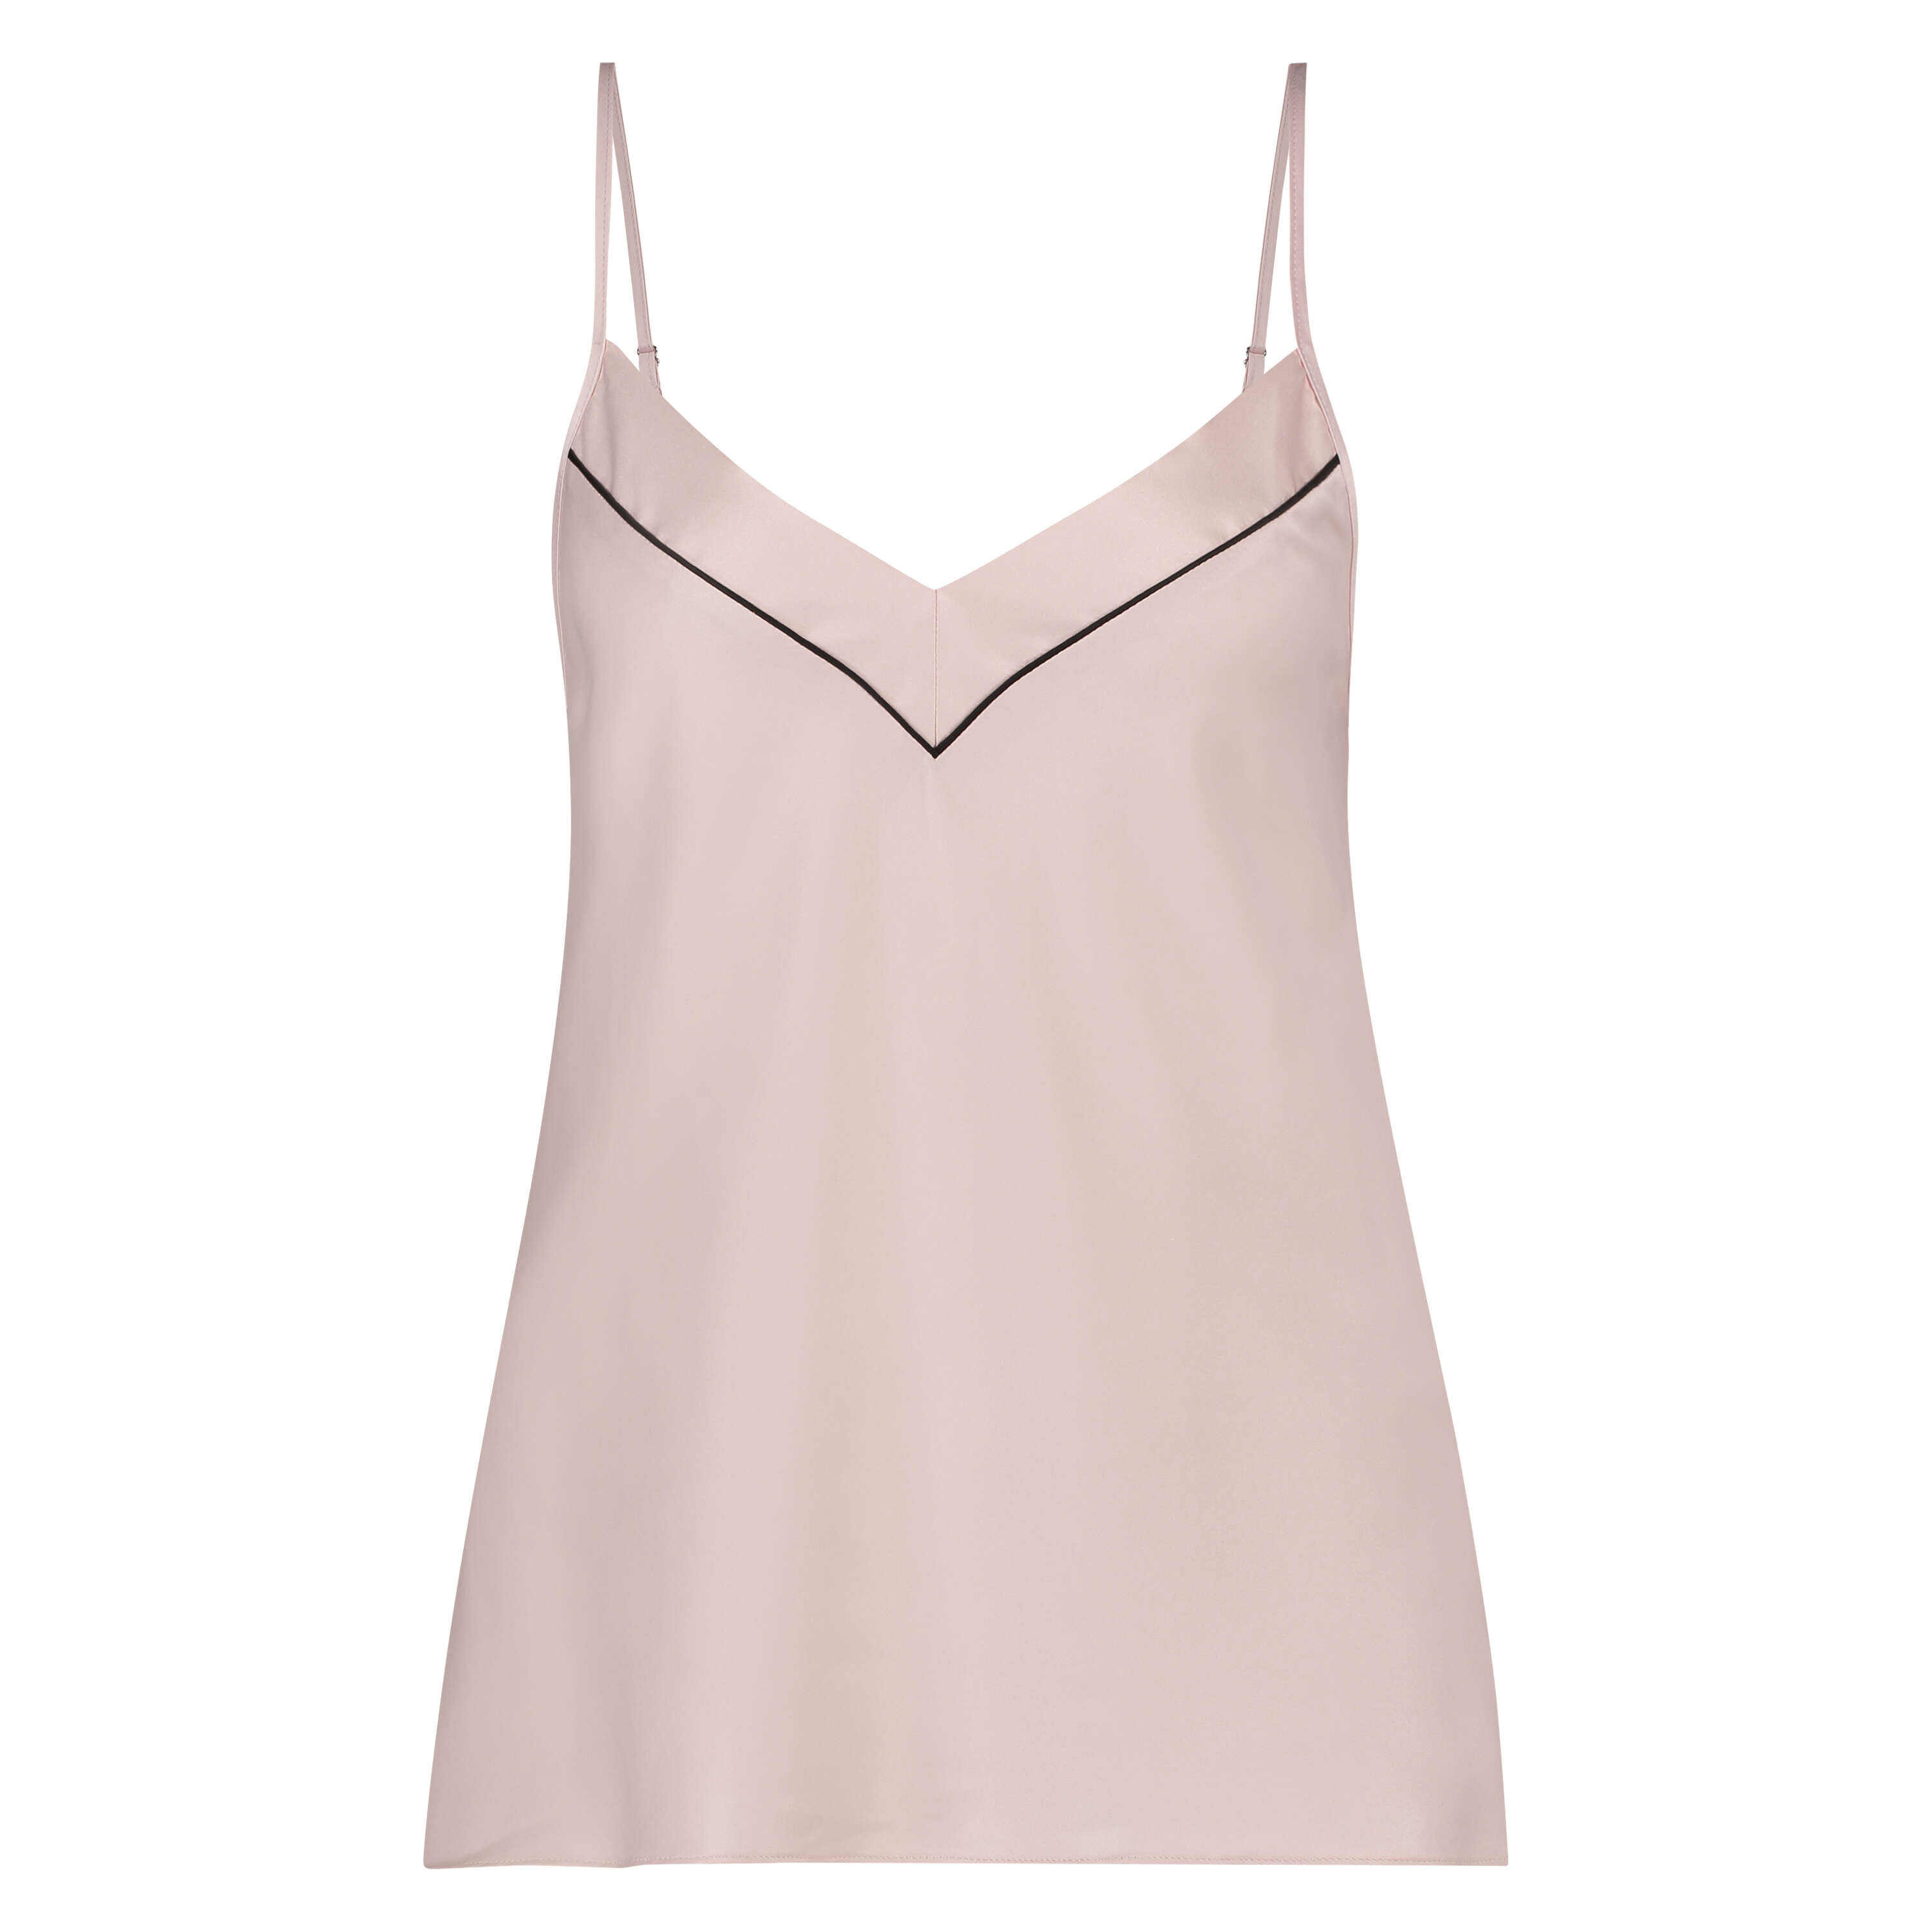 Cami top Satin Bow, Roze, main